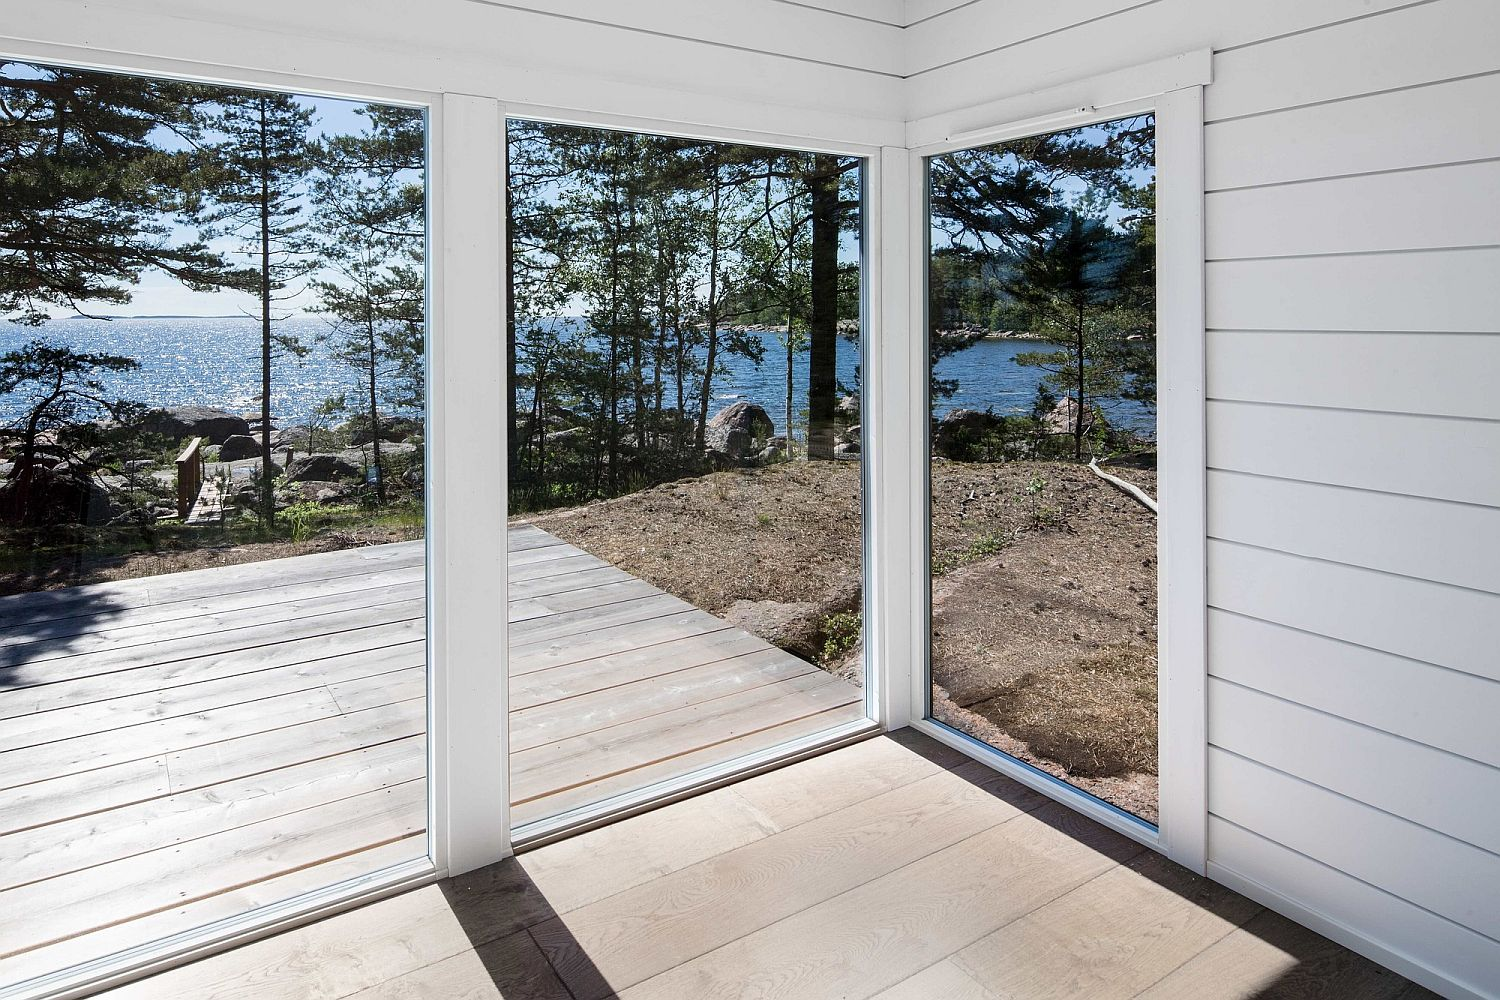 Glittering sea views and a rocky shore surround the serene Summer House